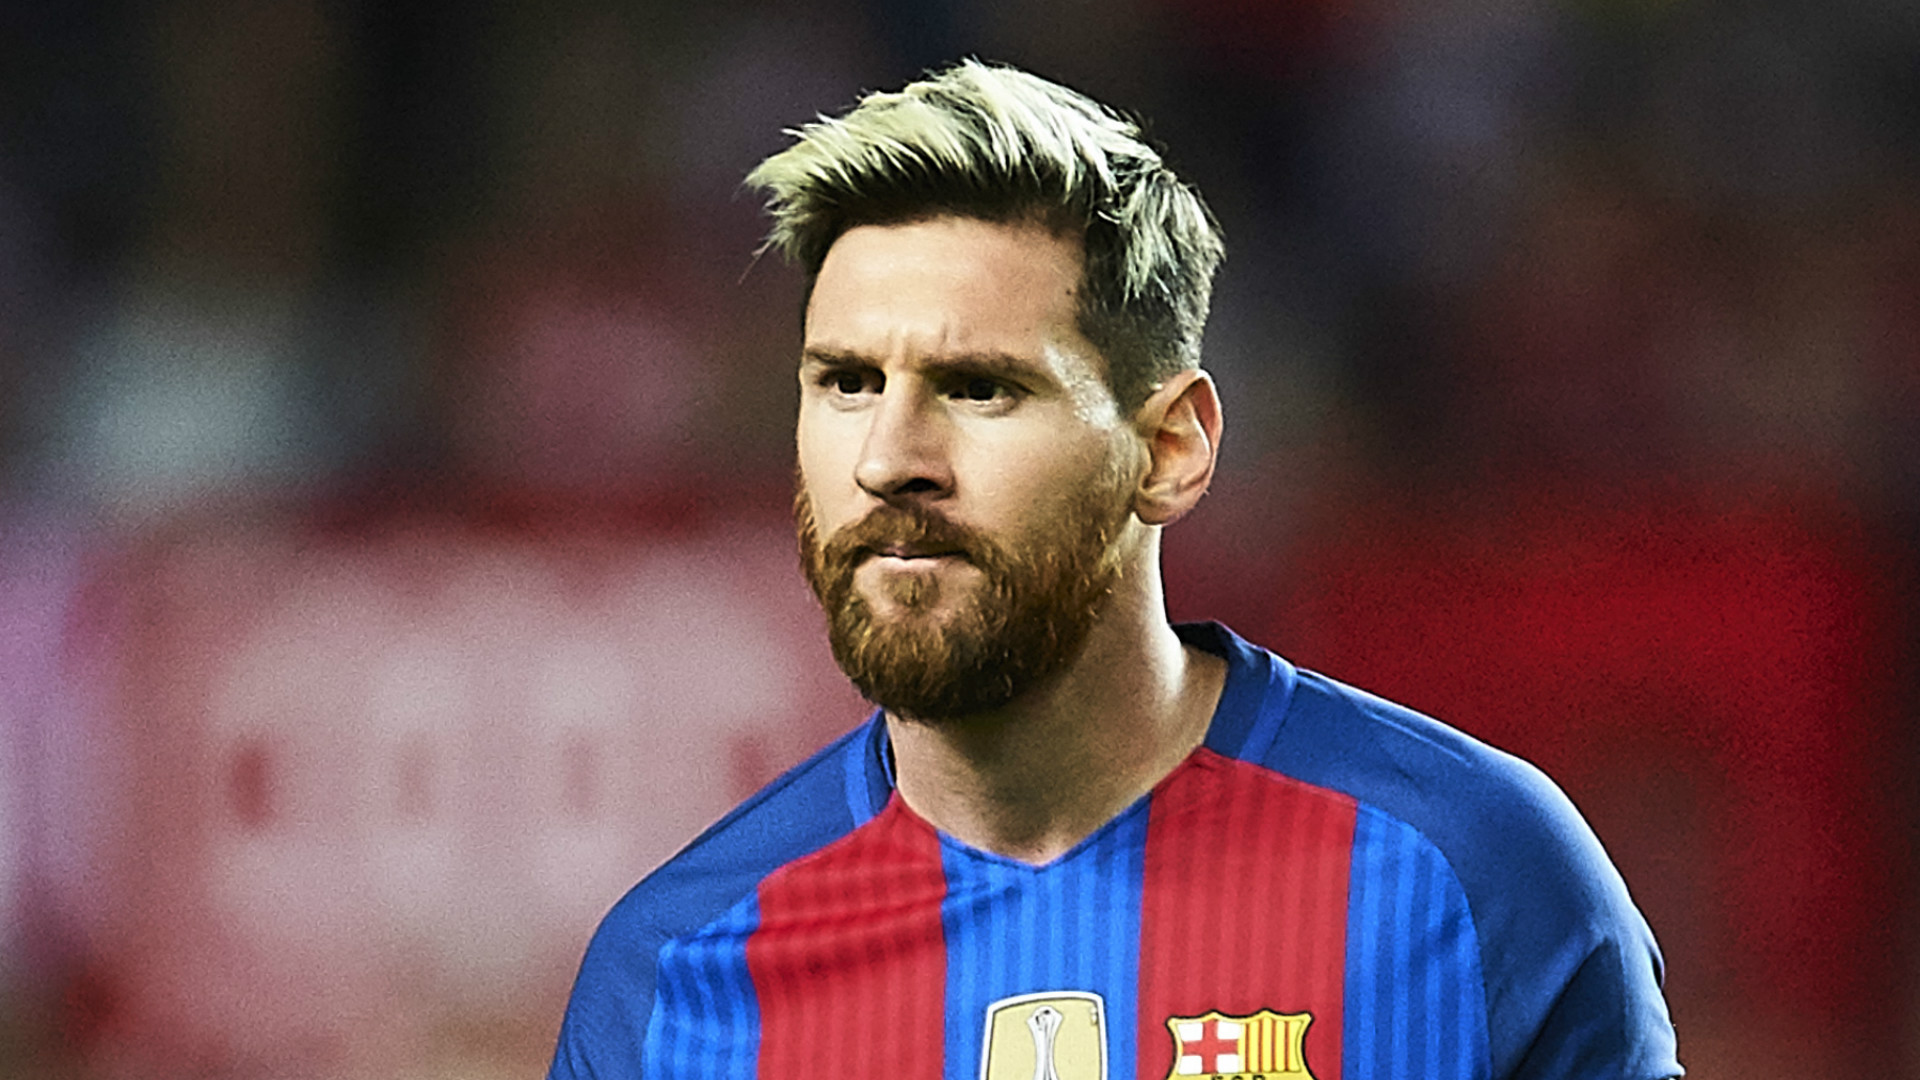 Photo Of Messi New Hairstyle Best Hairstyle 2018